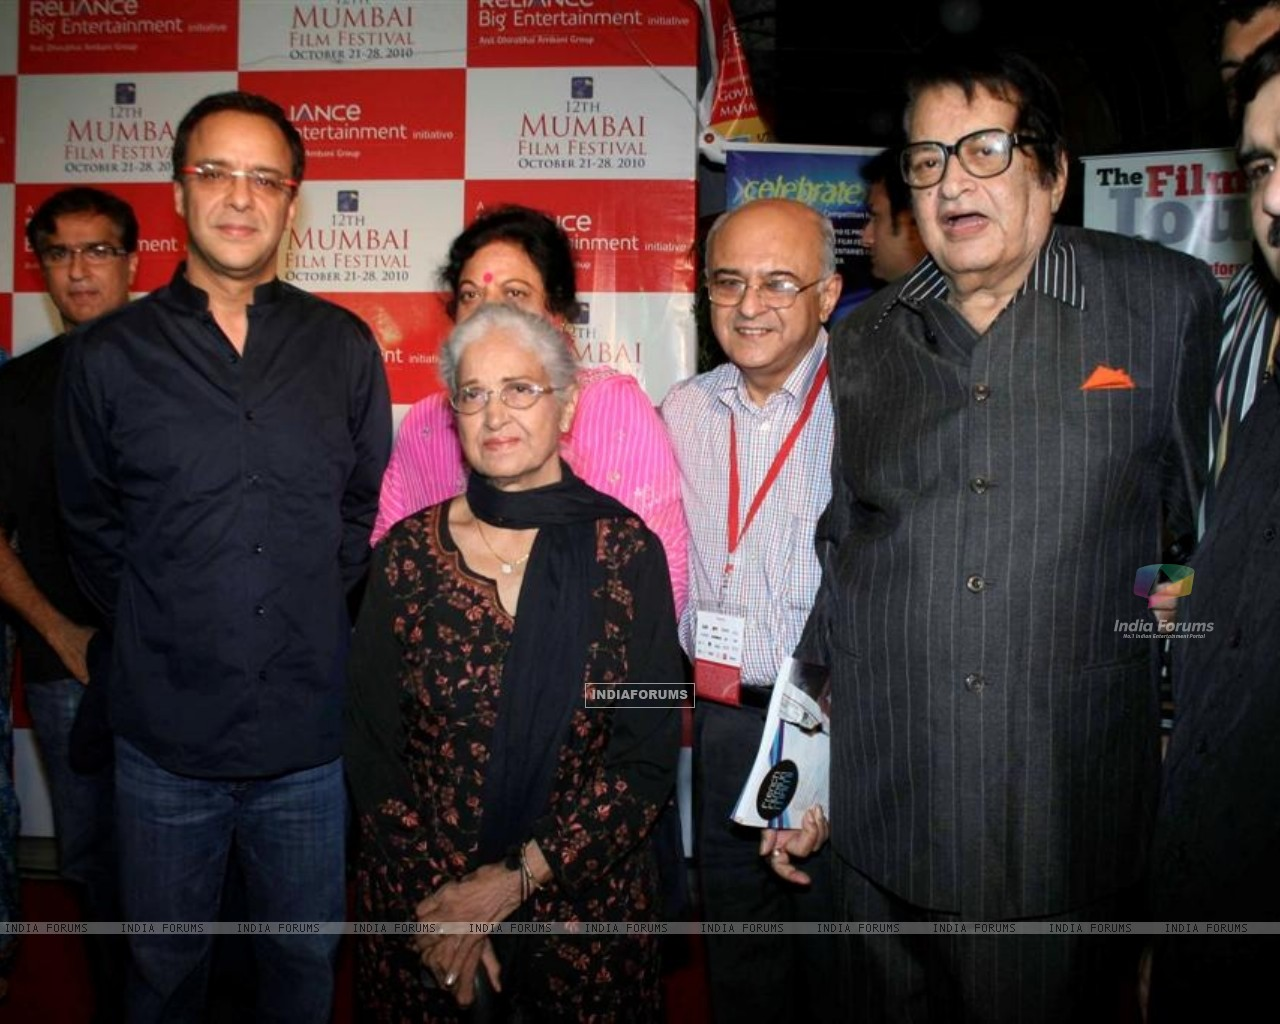 Vidhu Vinod Chopra and Manoj Kumar at Closing ceremony of 12th Mumbai Film Festival (104597) size:1280x1024